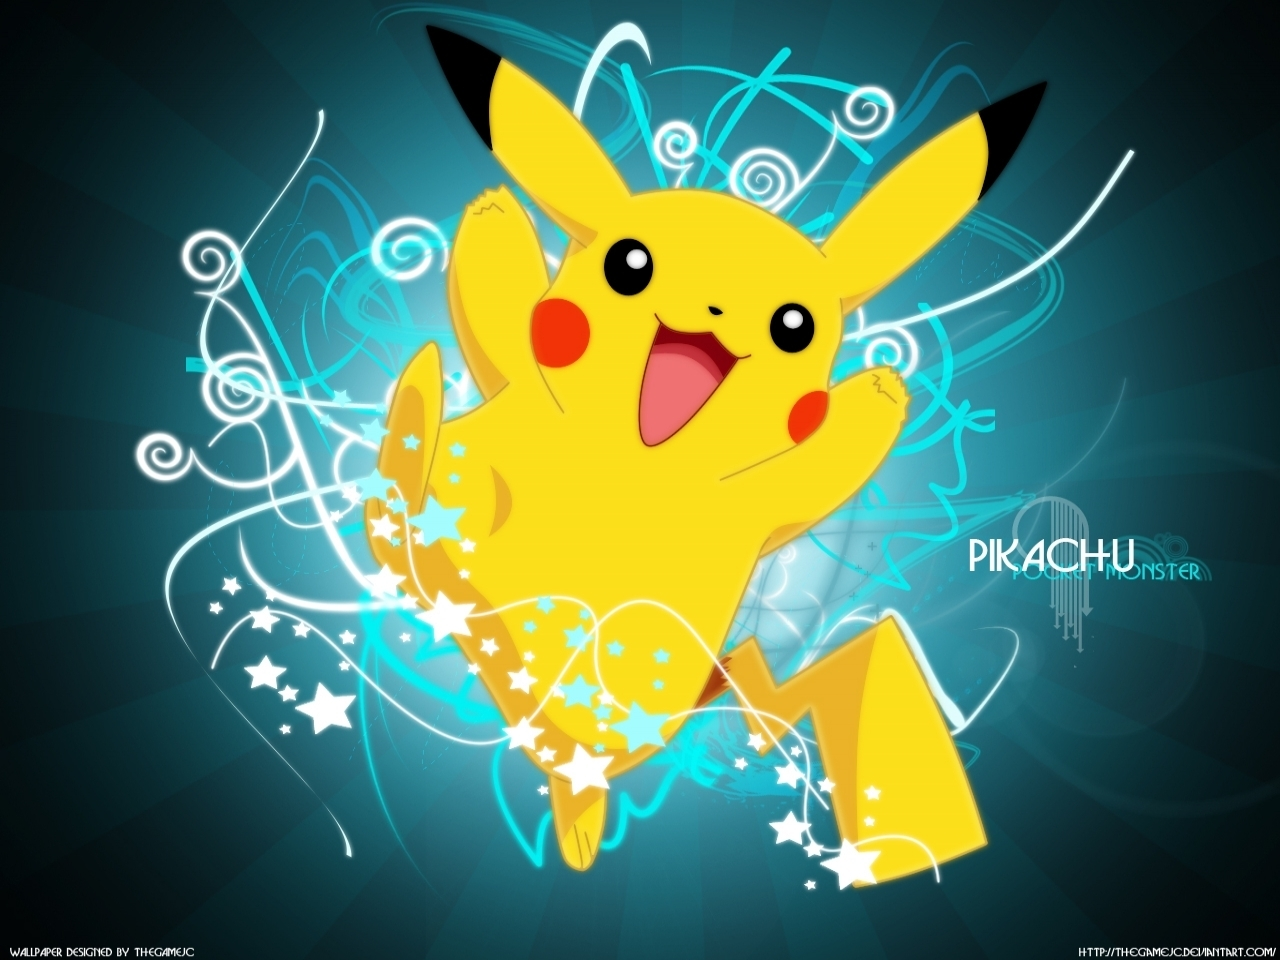 Electric Type Pokemon Images Pikachu Wallpaper HD And Background Photos